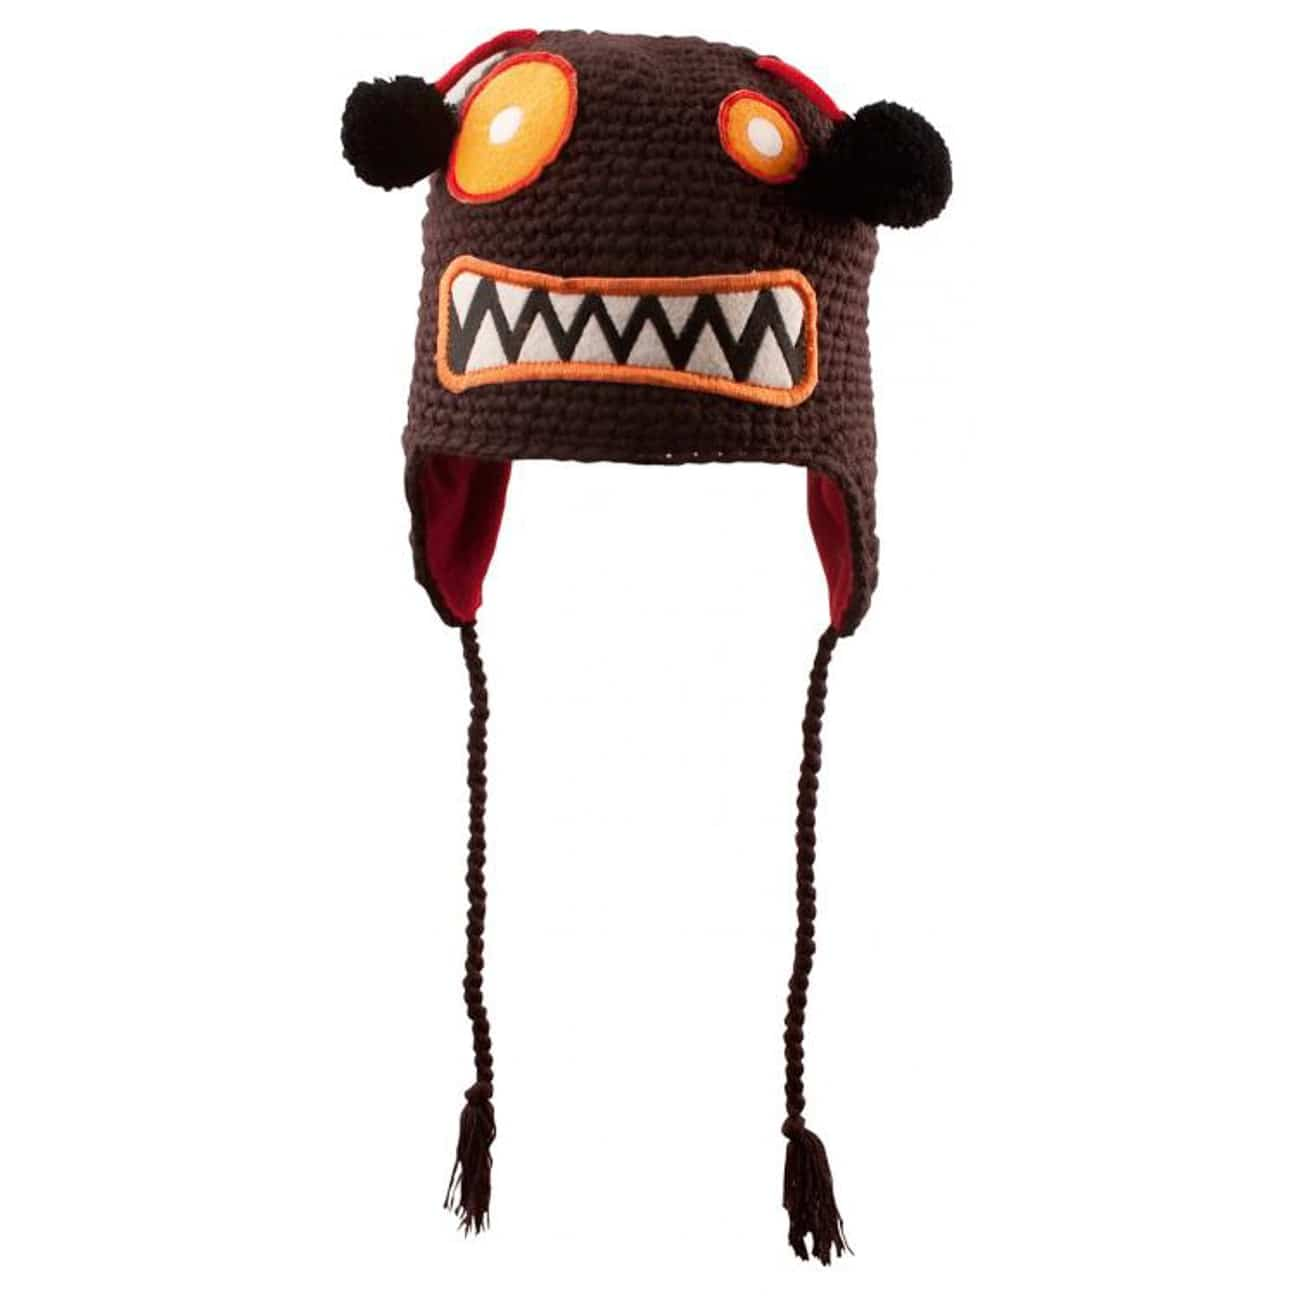 9a012f30f17 Monster Fun Kids Hat by Chillouts - brown 1